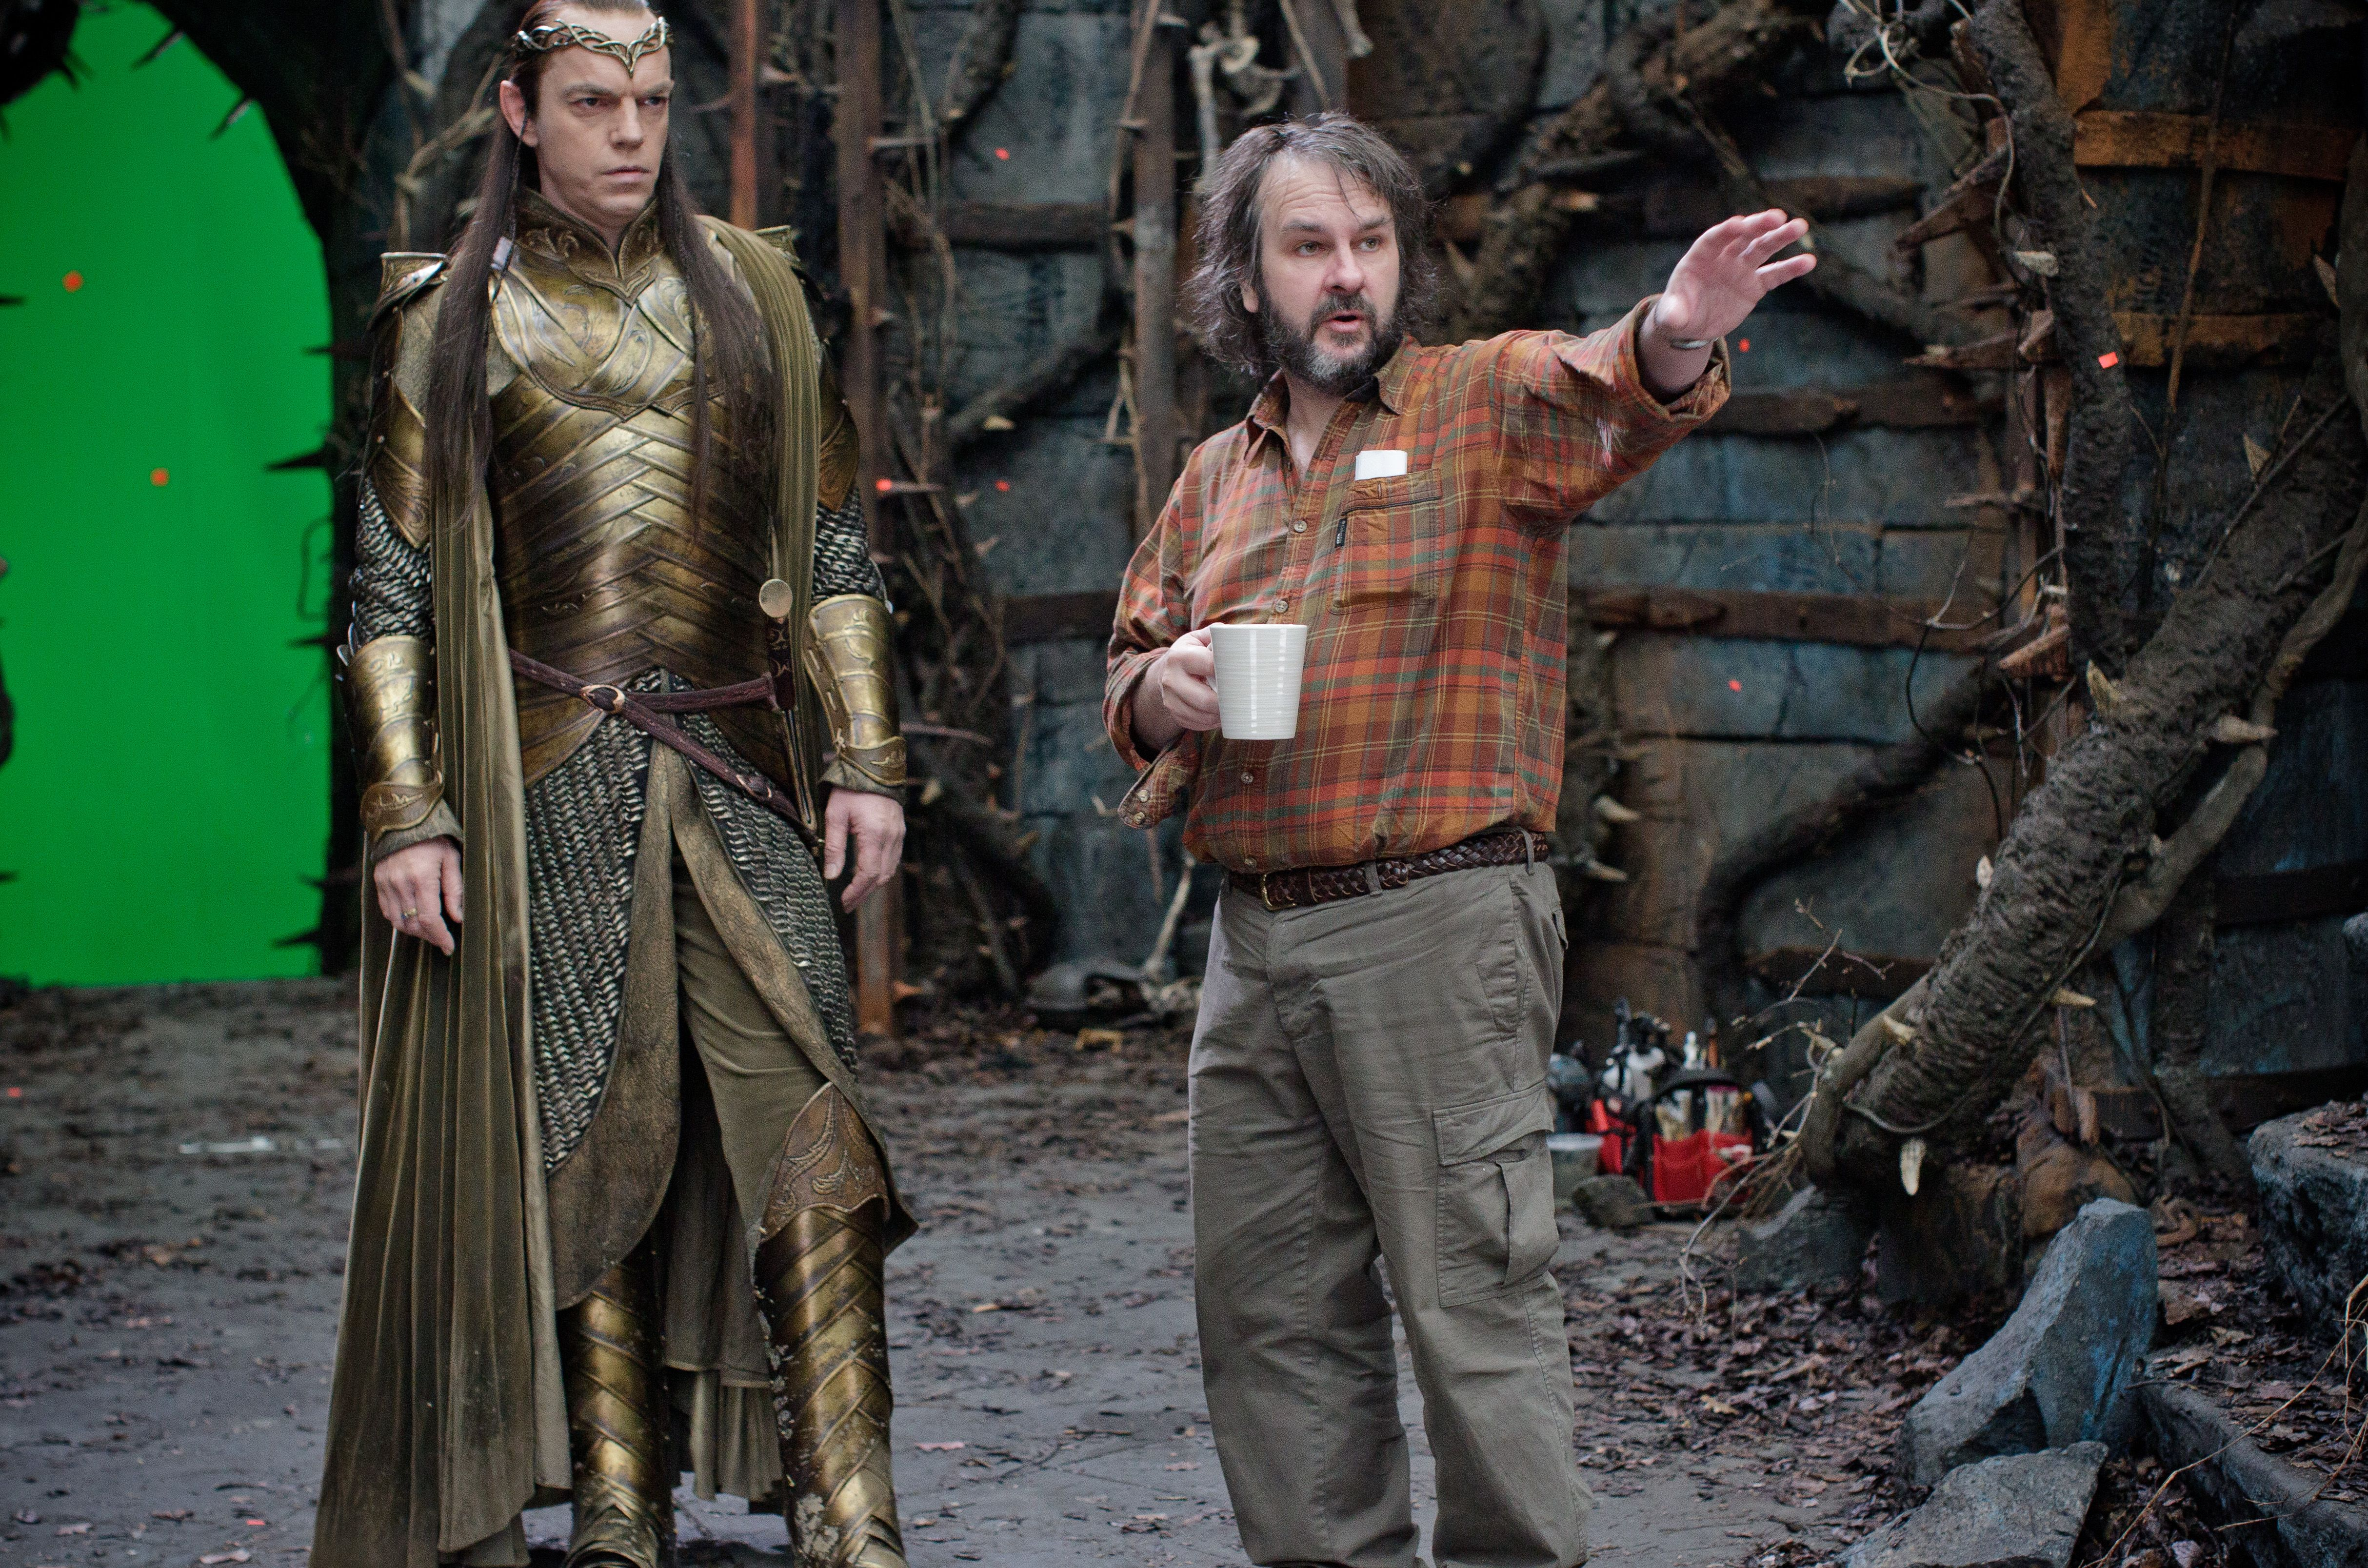 peter jackson directing hugo weaving as elrond in front of